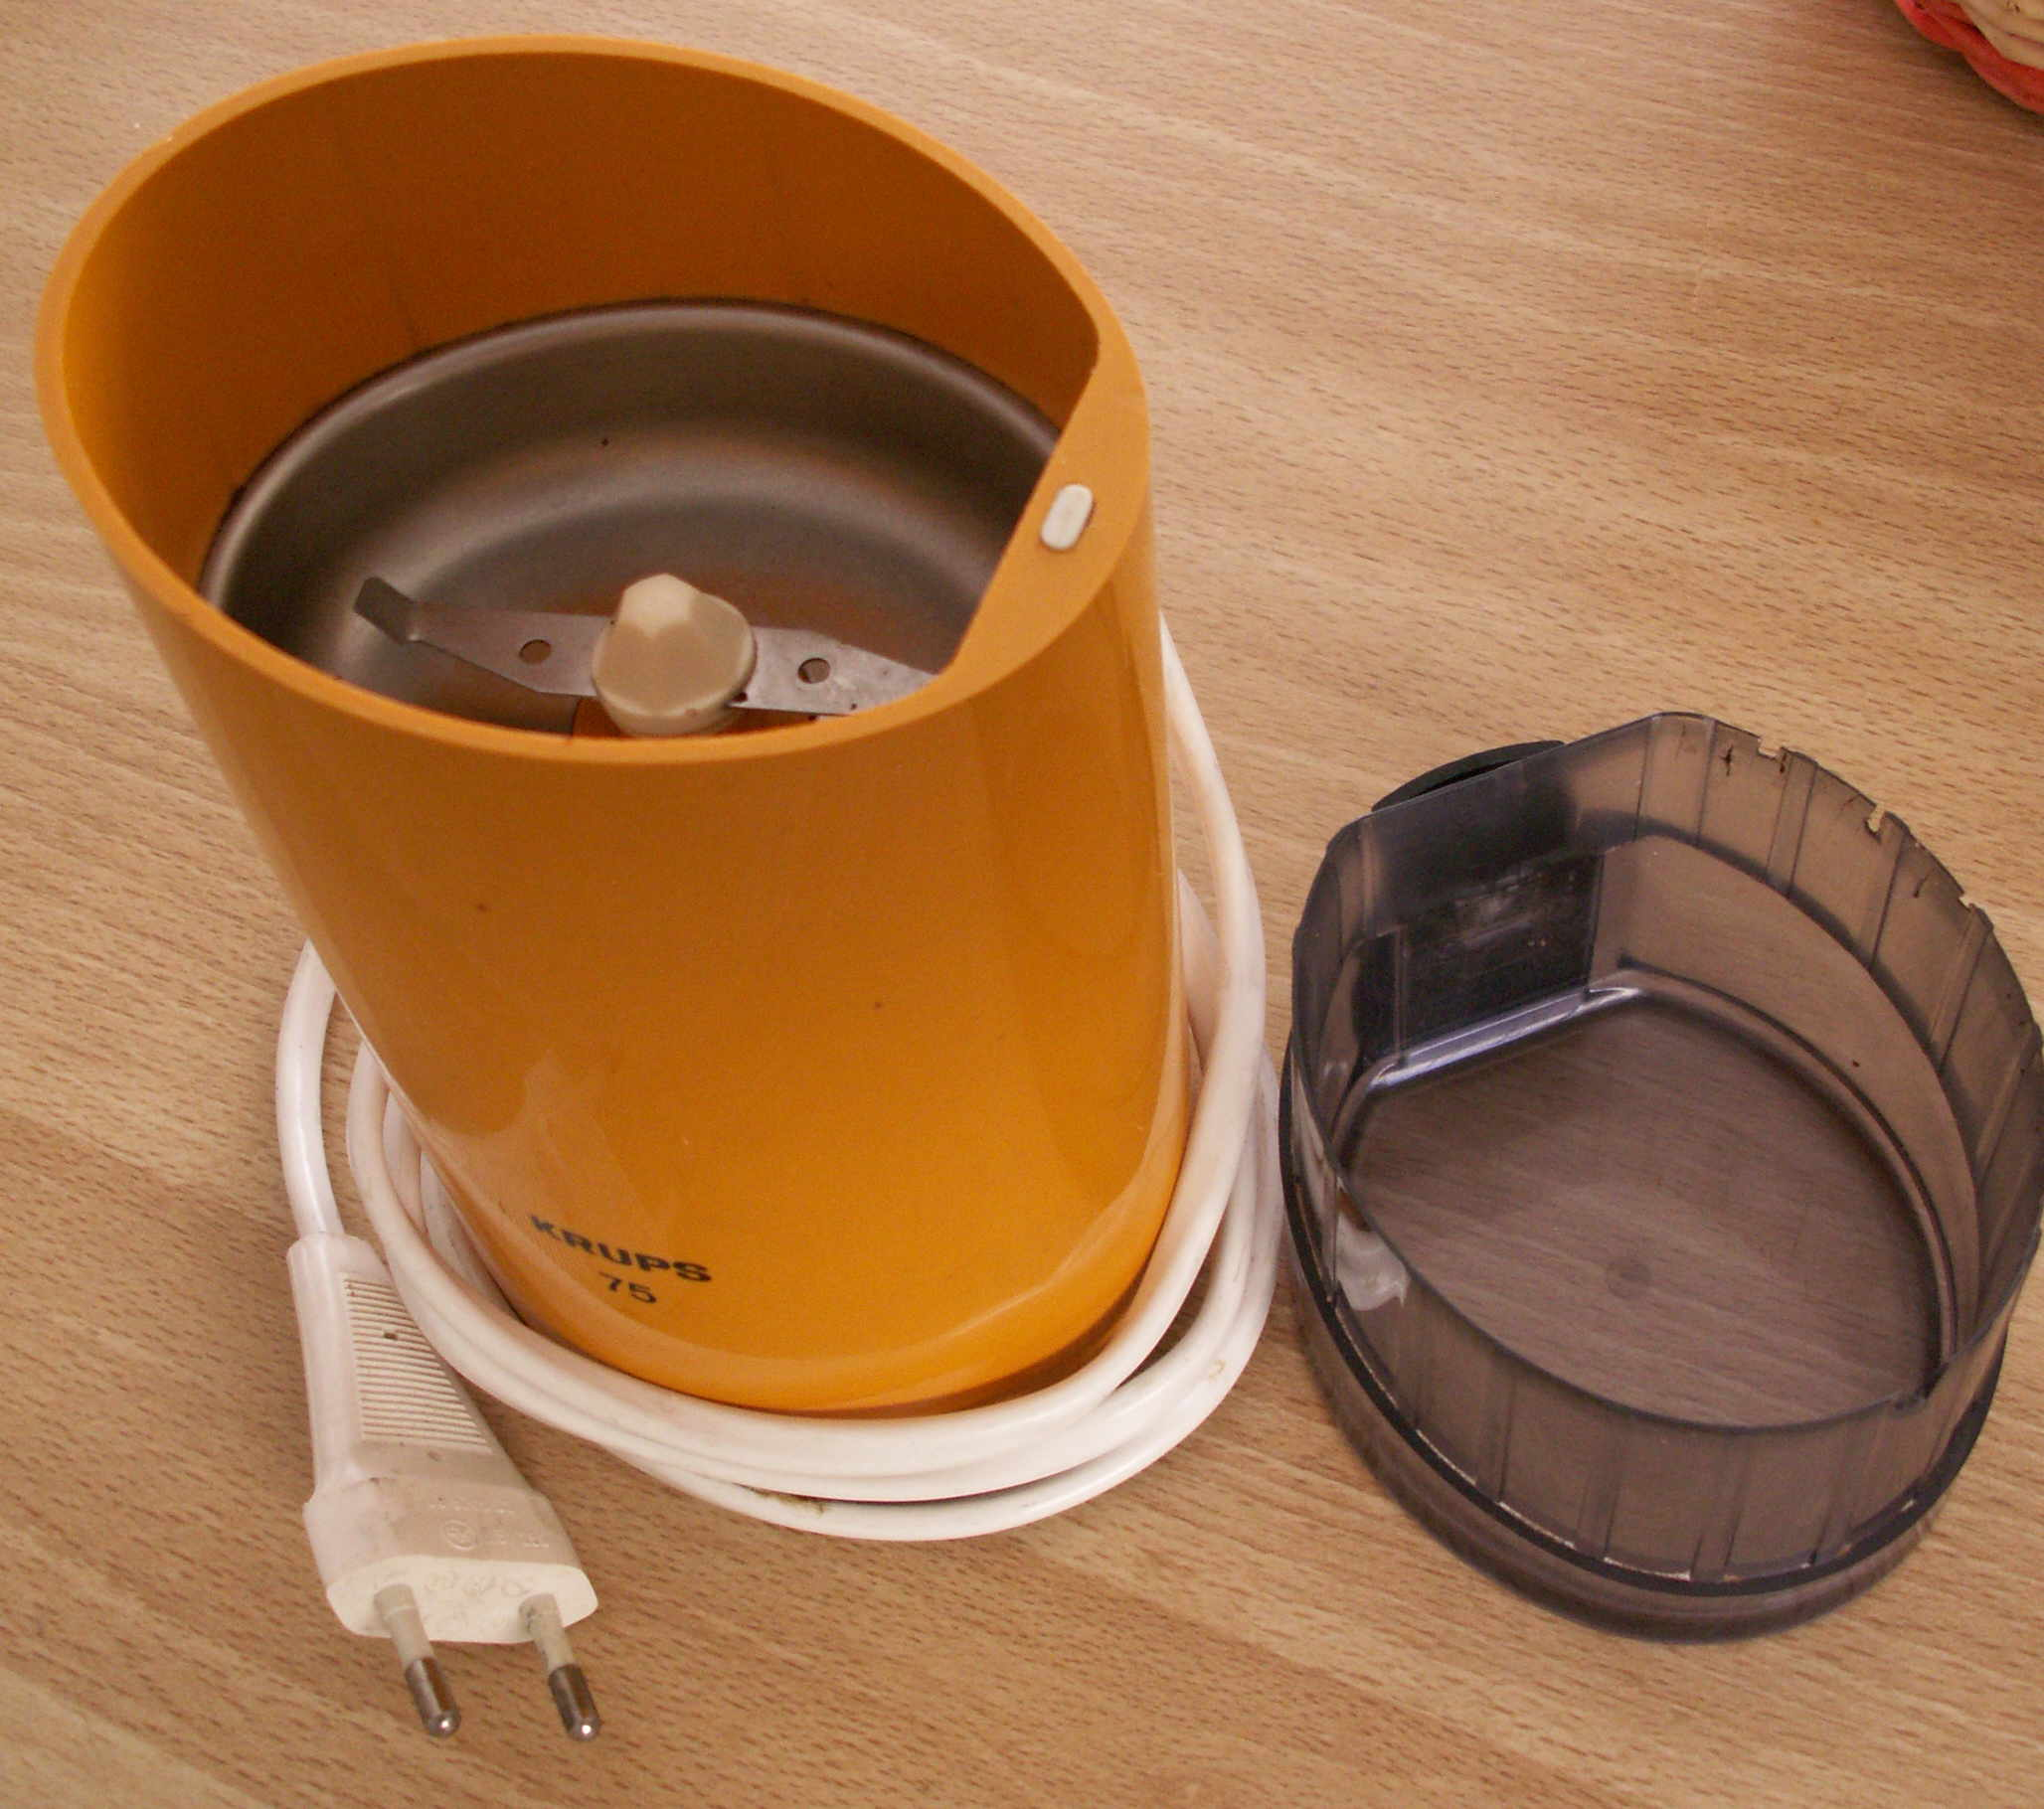 A typical blade coffee grinder.